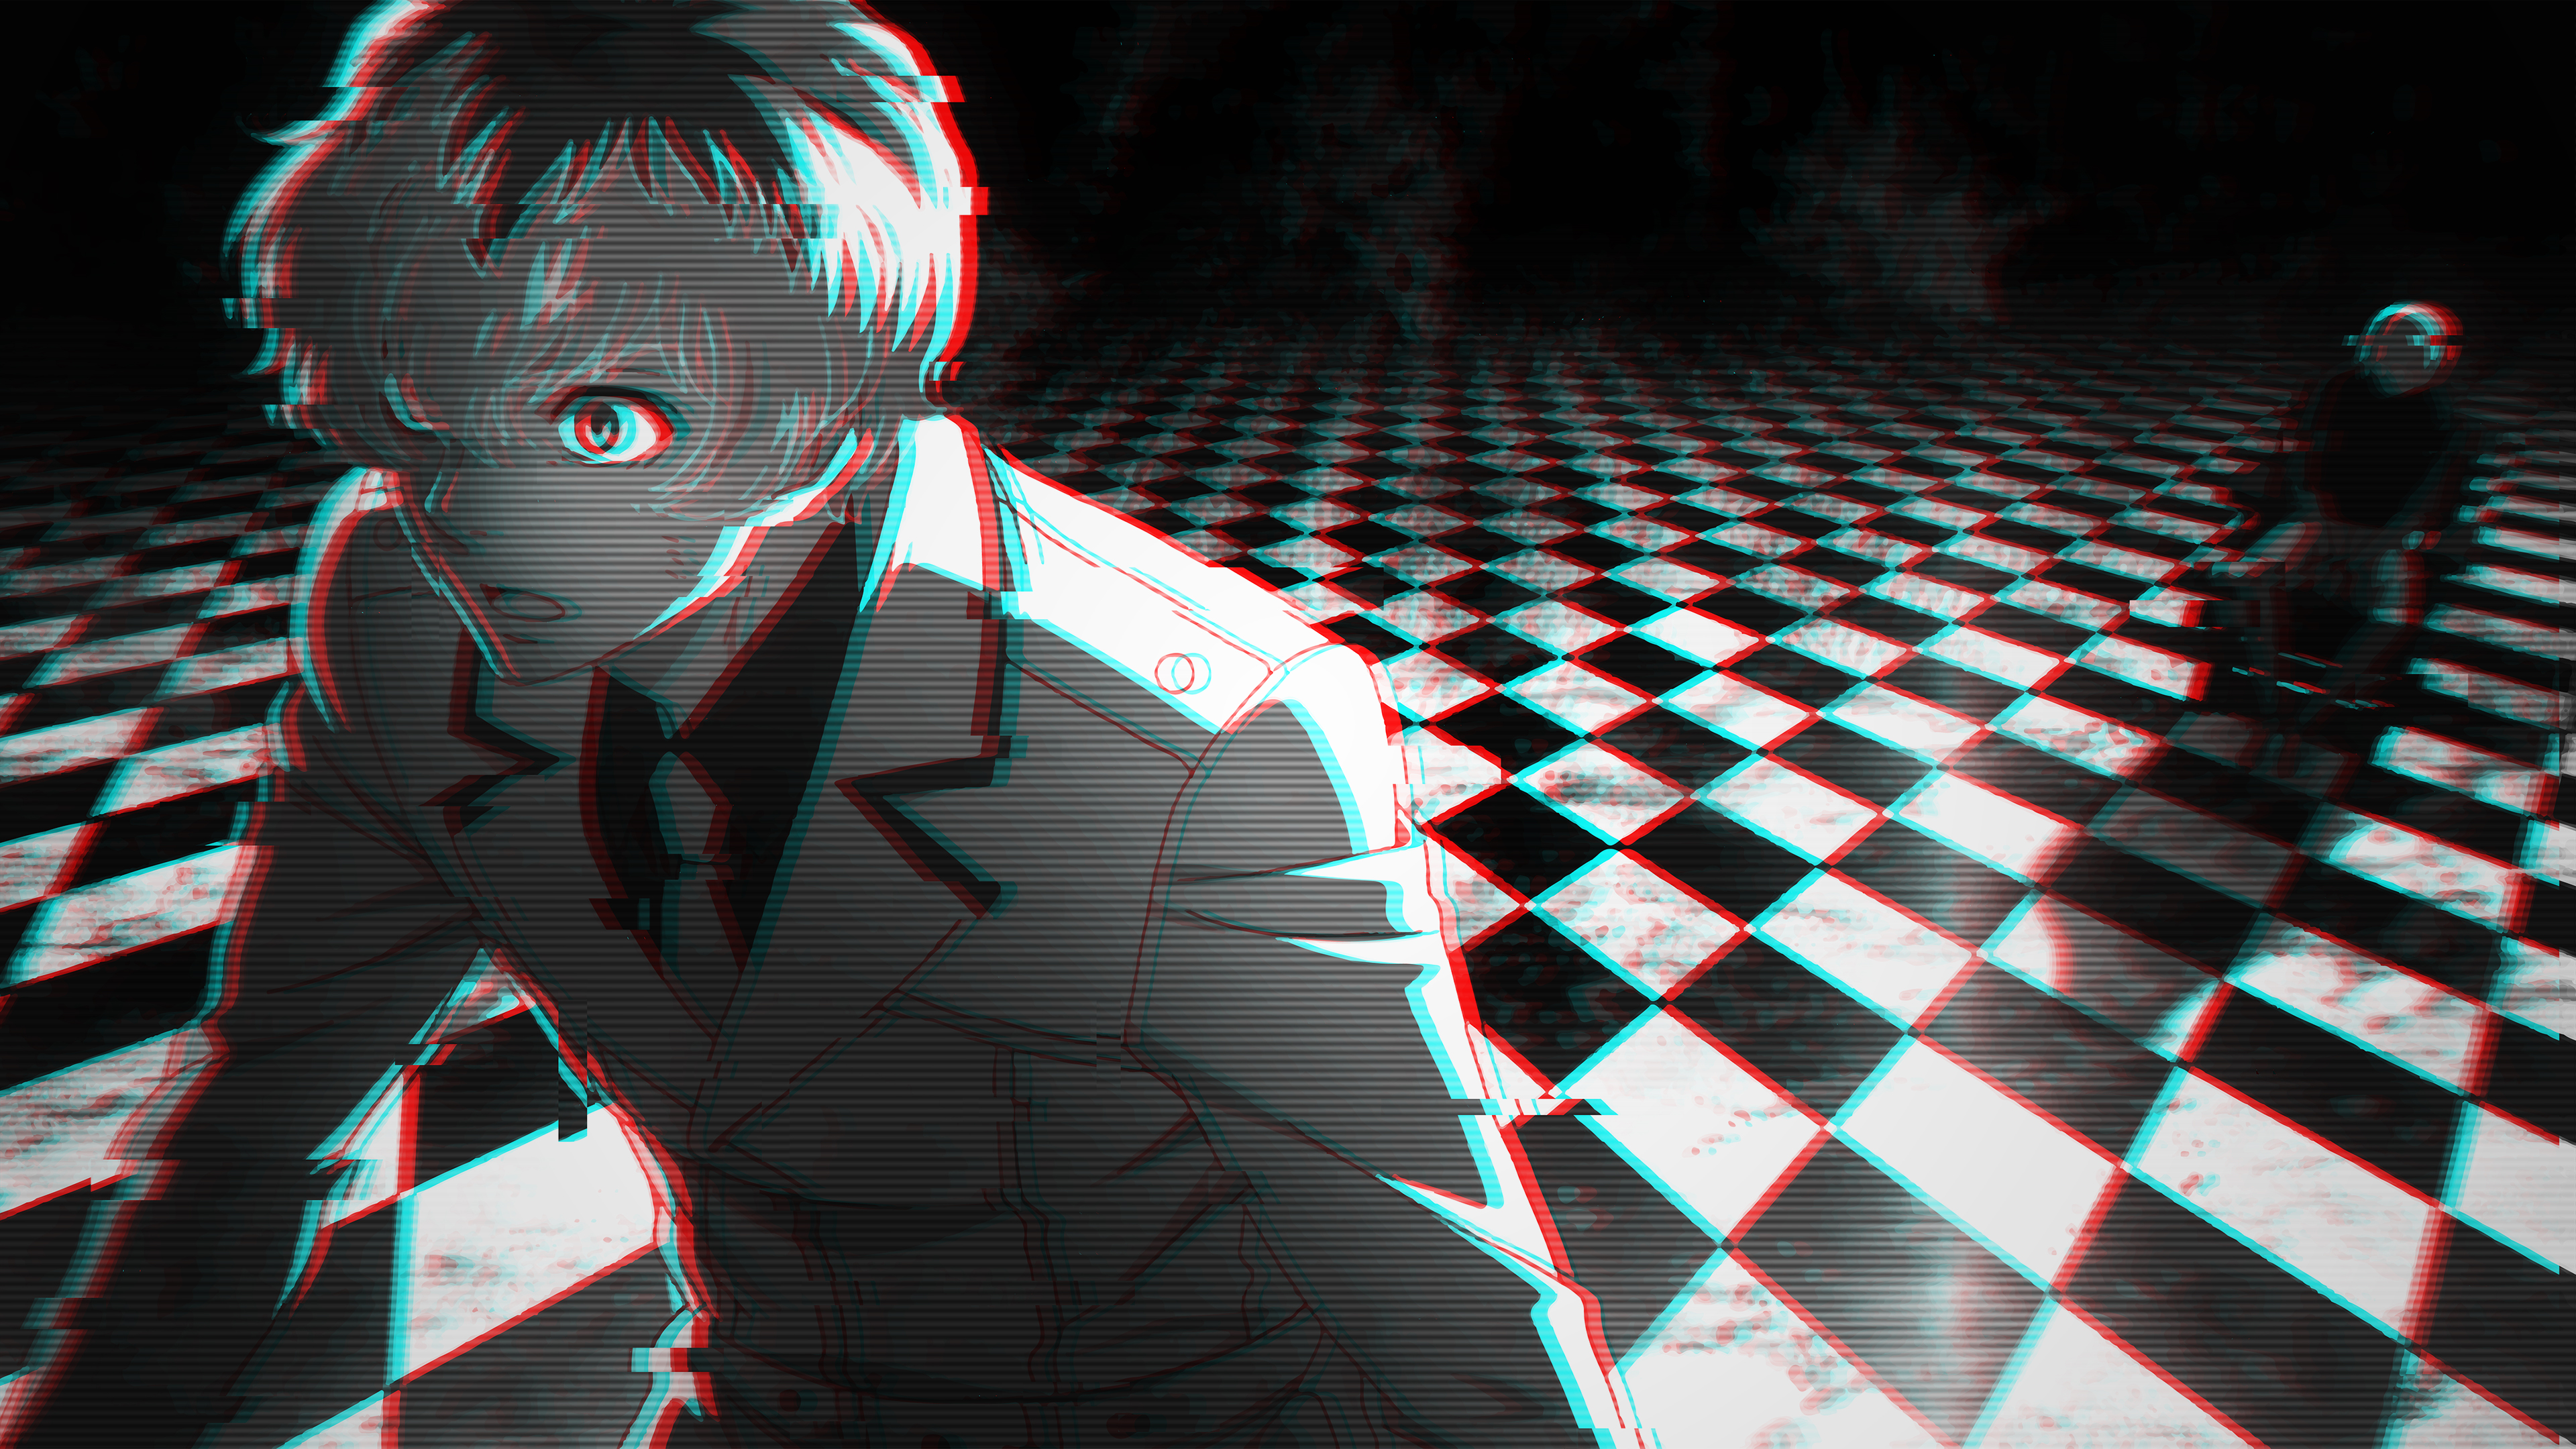 Haise Sasaki Glitch Desktop 4k Uhd Wallpaper - Tokyo Ghoul Re 4k , HD Wallpaper & Backgrounds